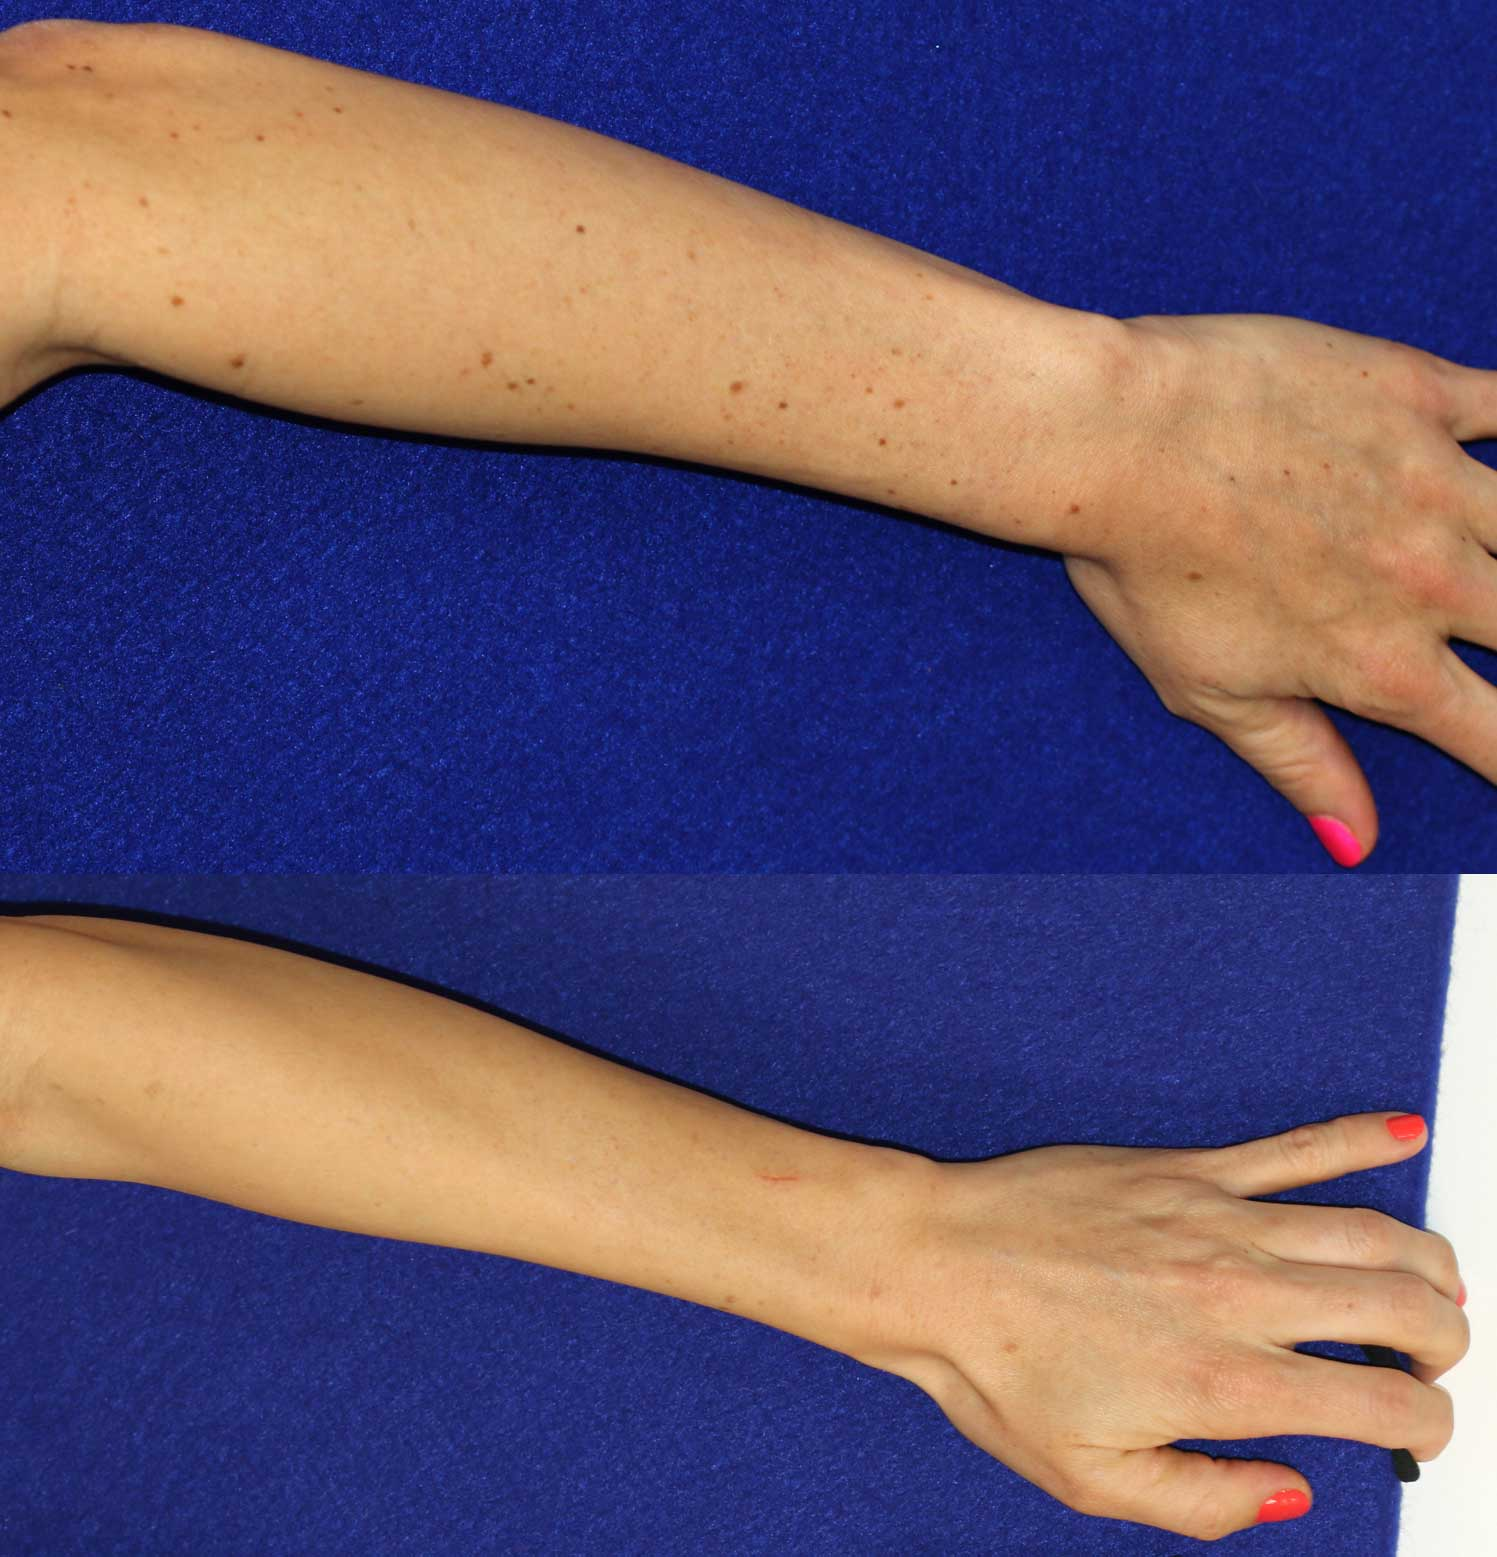 Laser treatment to arm and hand spots